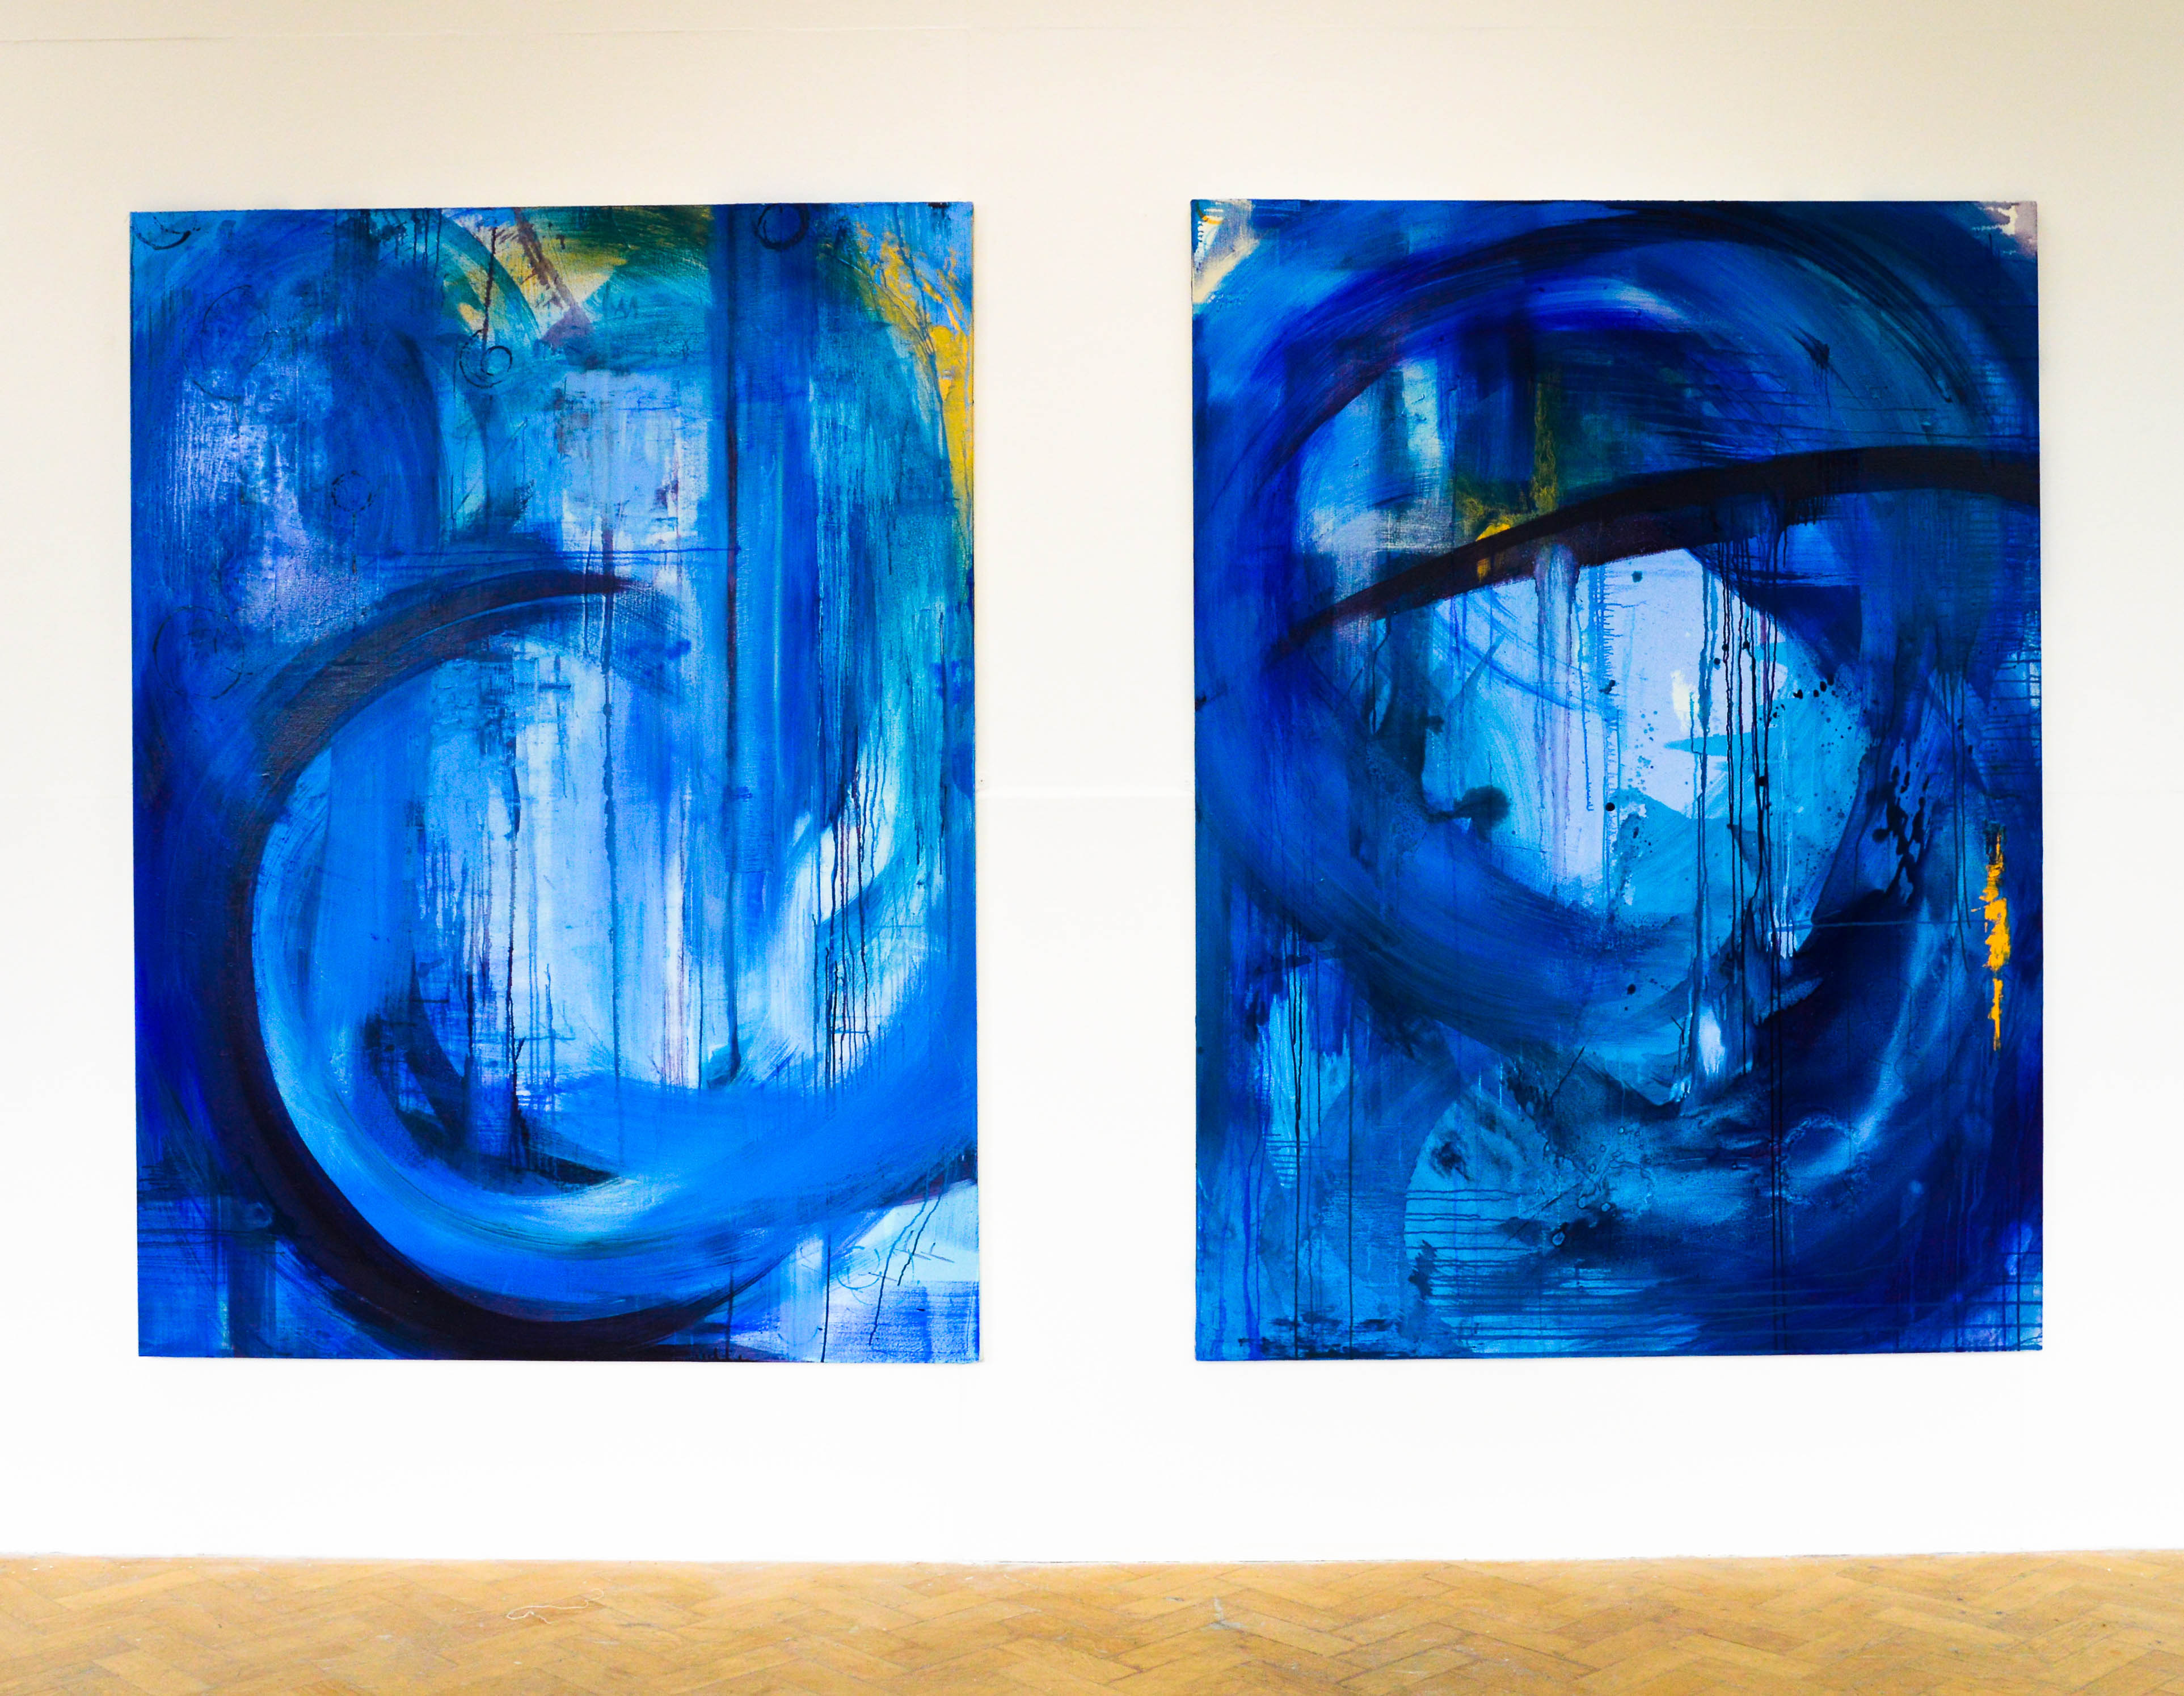 Blue Series 2. Oil on canvas. Diptych. 182.9x134.5cm. For sale.